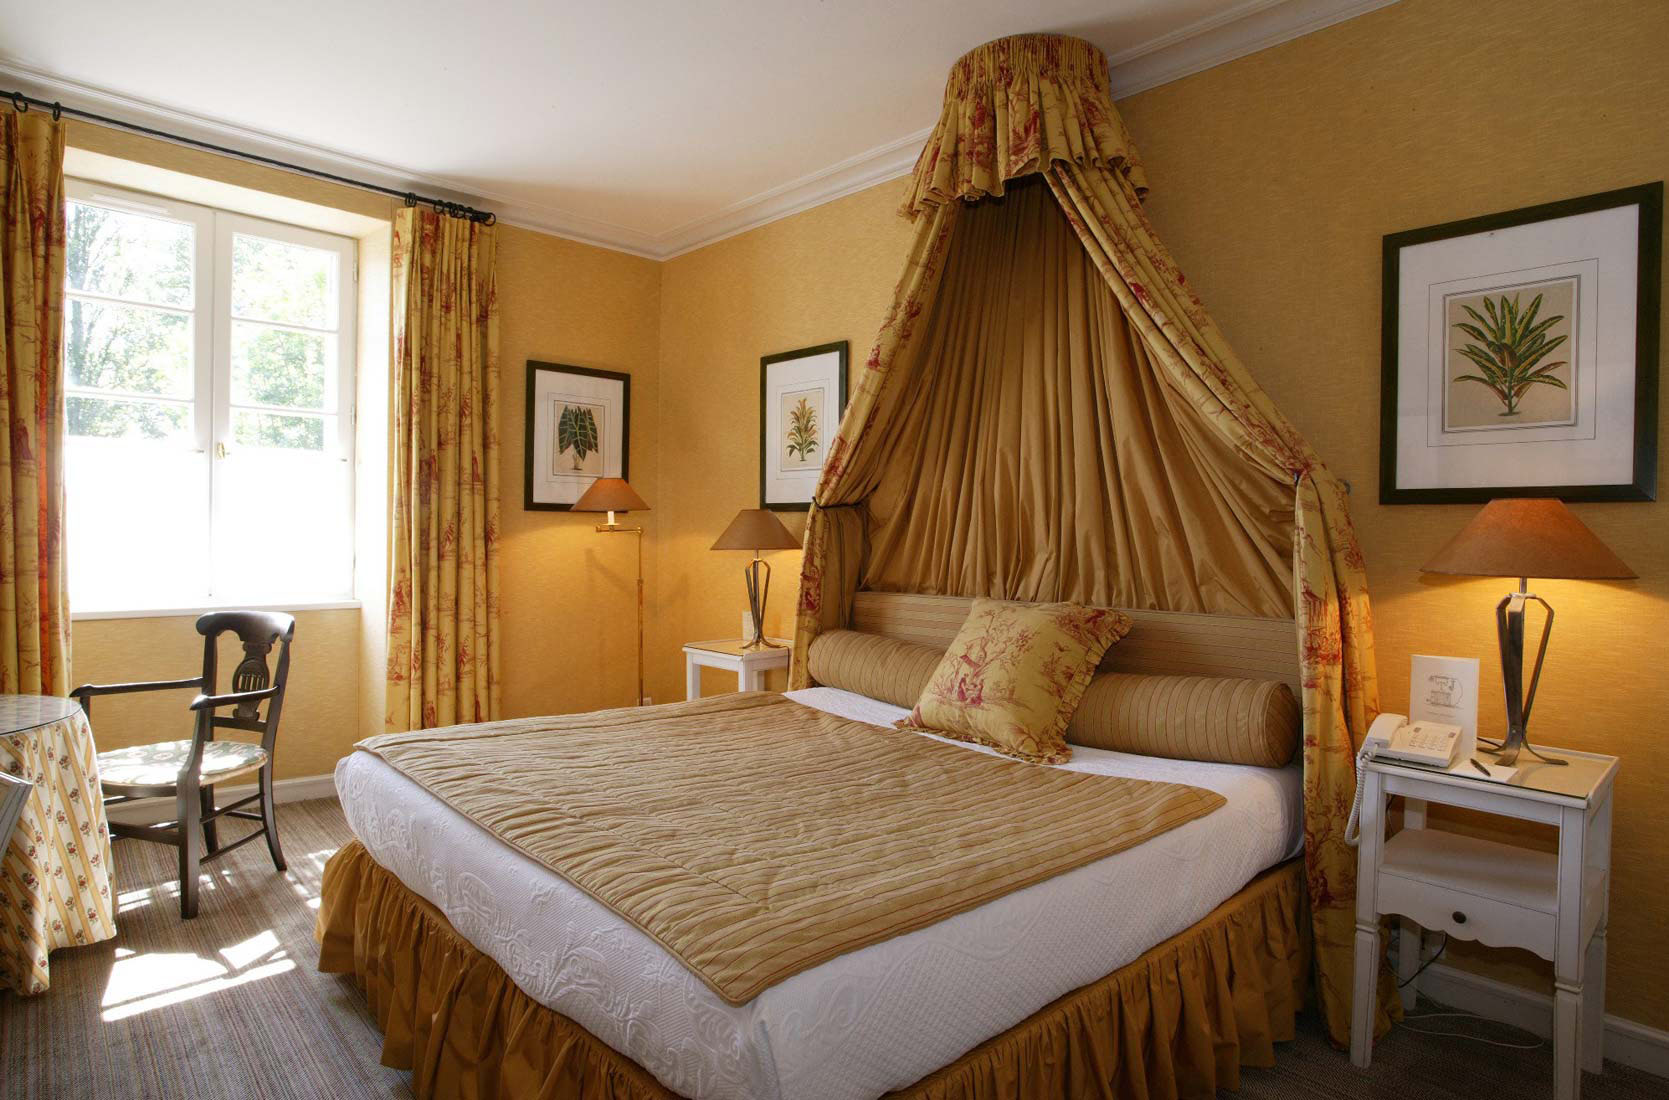 Le Moulin De LAbbaye  A Charming French Village Hotel In